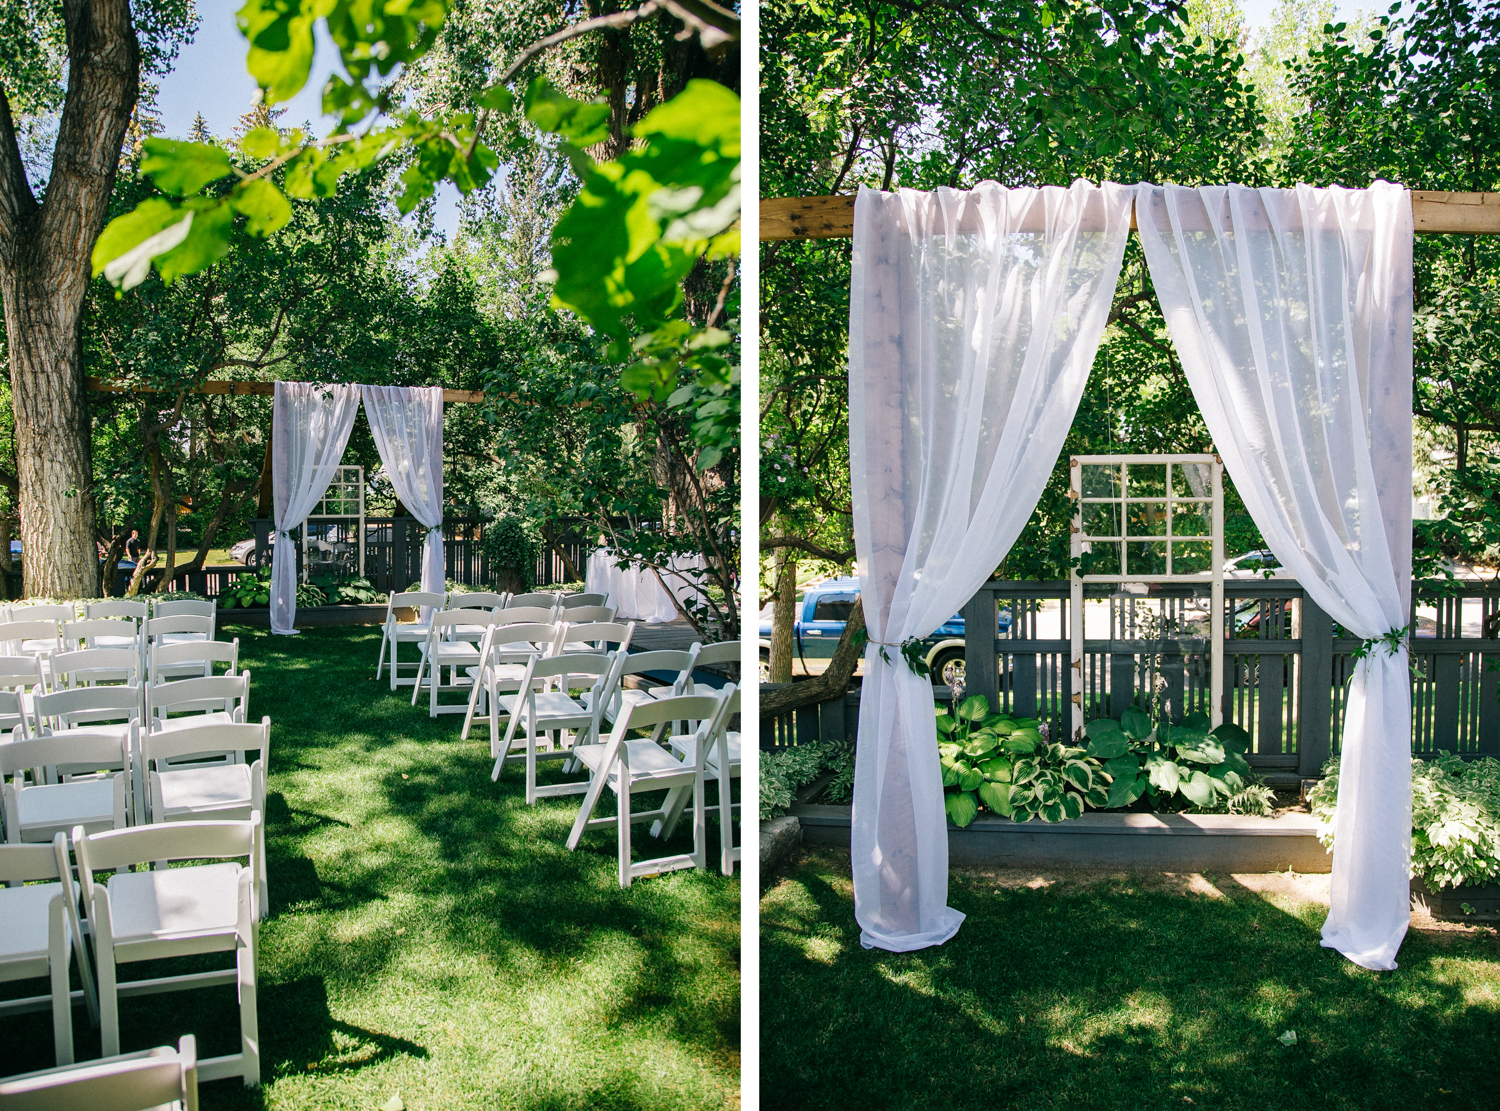 lethbridge-wedding-photography-love-and-be-loved-photographers-ashlin-anne-backyard-wedding-image-picture-photo-130.jpg